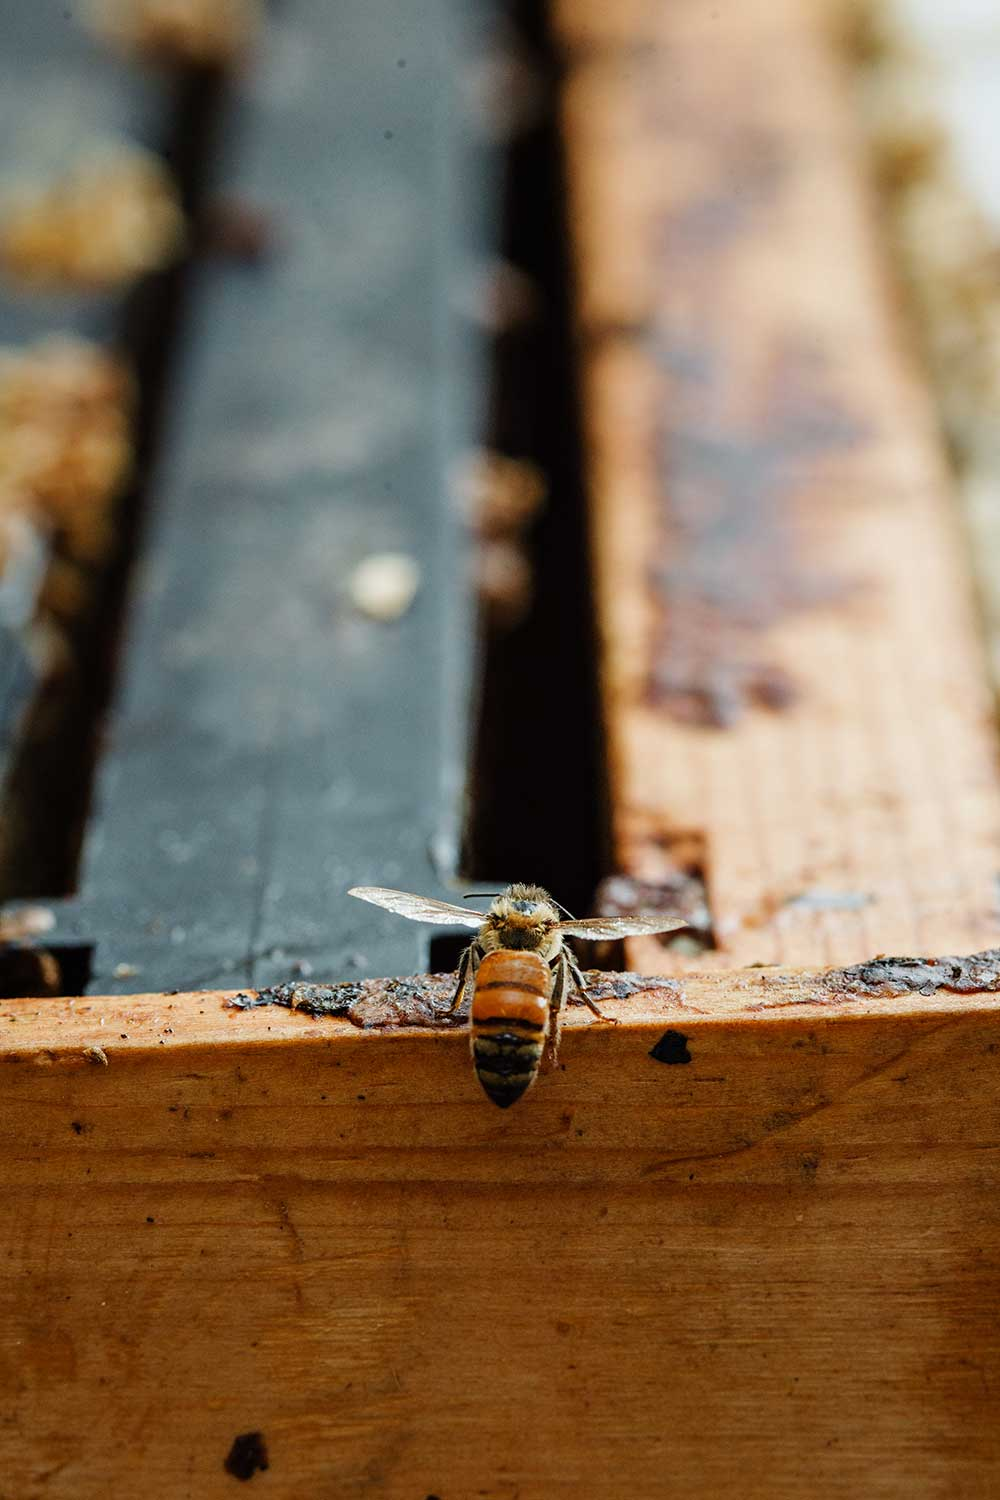 A single honeybee perched on a piece of wood